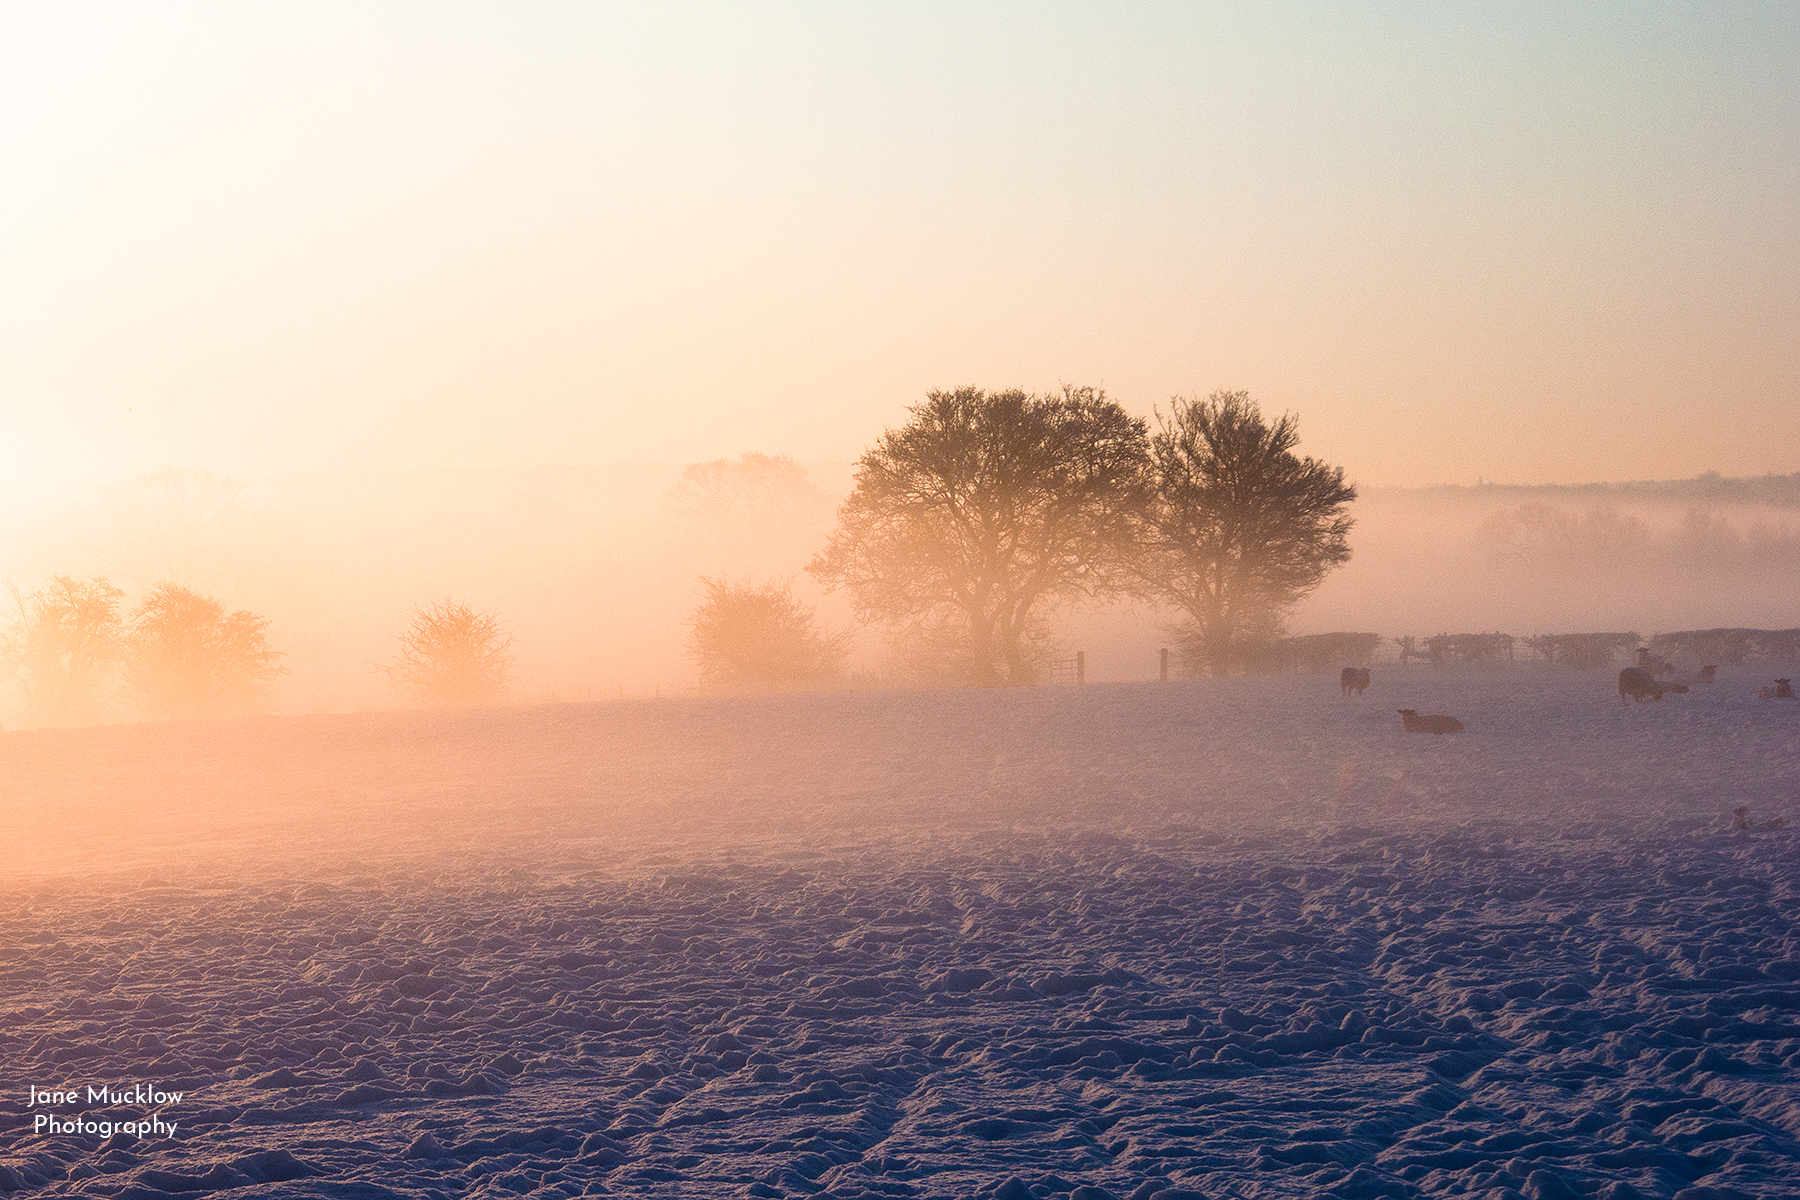 Photo by Jane Mucklow of a misty sunrise view towards Sevenoaks, Kent, from Otford, in the snow.